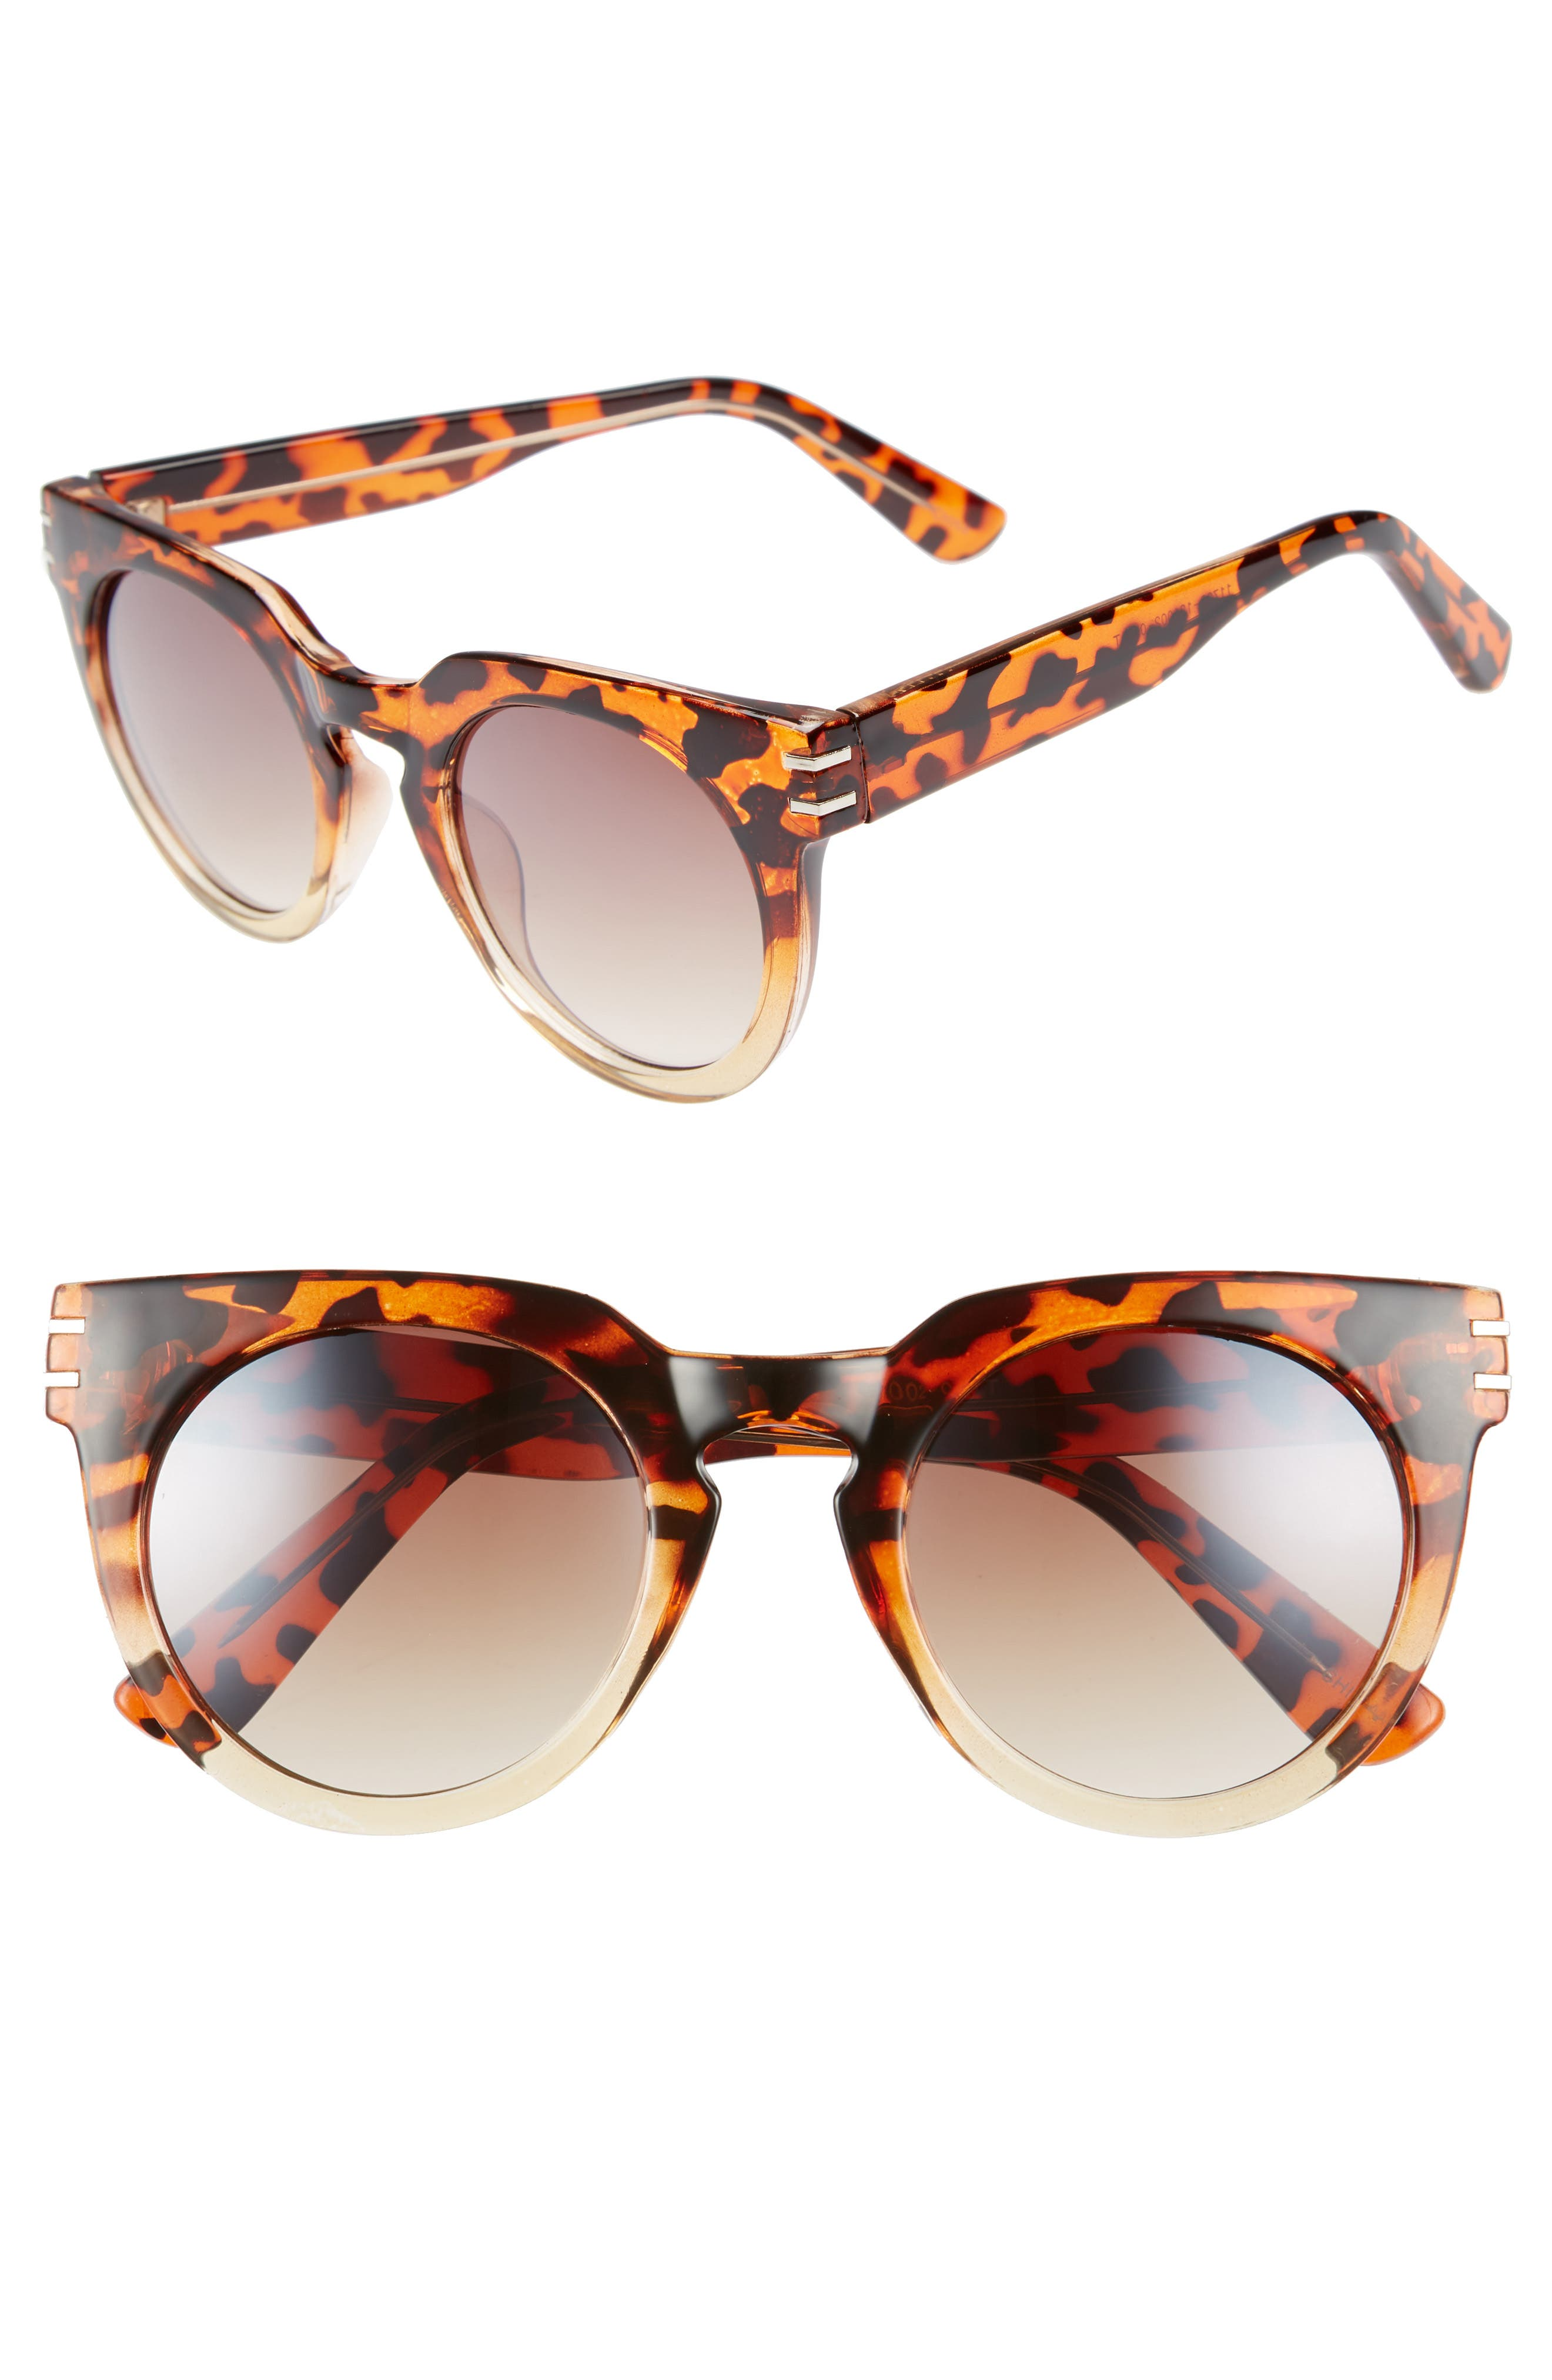 50mm Round Sunglasses,                             Main thumbnail 1, color,                             Leopard/ Brown